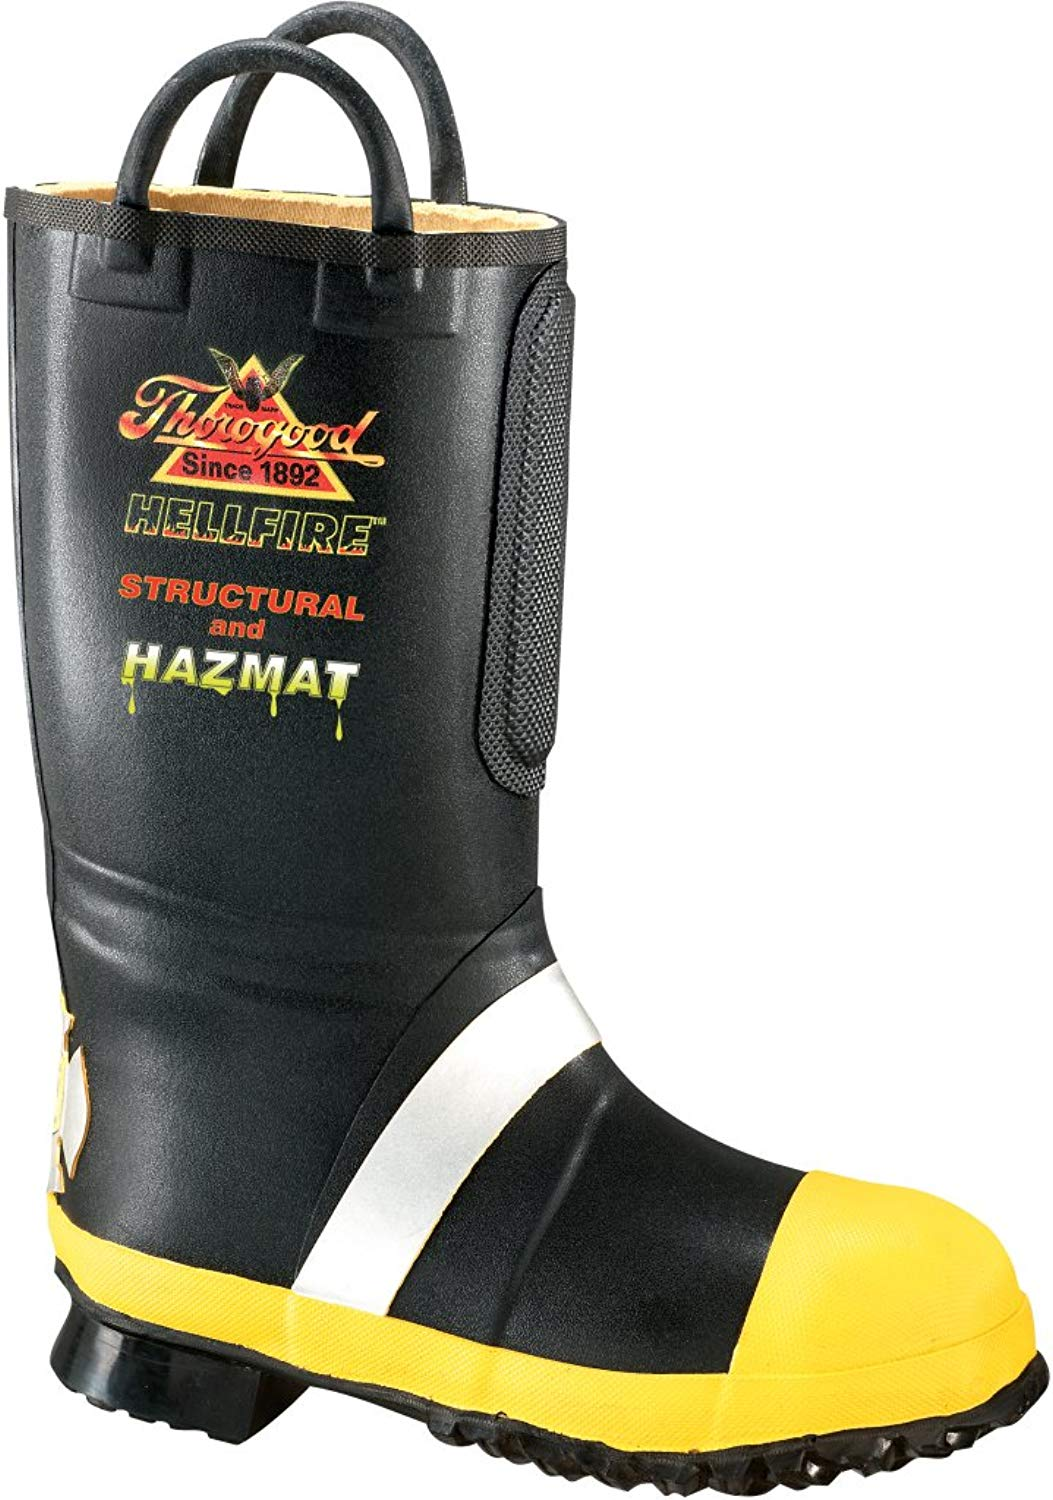 58de98d5764 Cheap Thorogood Fire Boots, find Thorogood Fire Boots deals on line ...